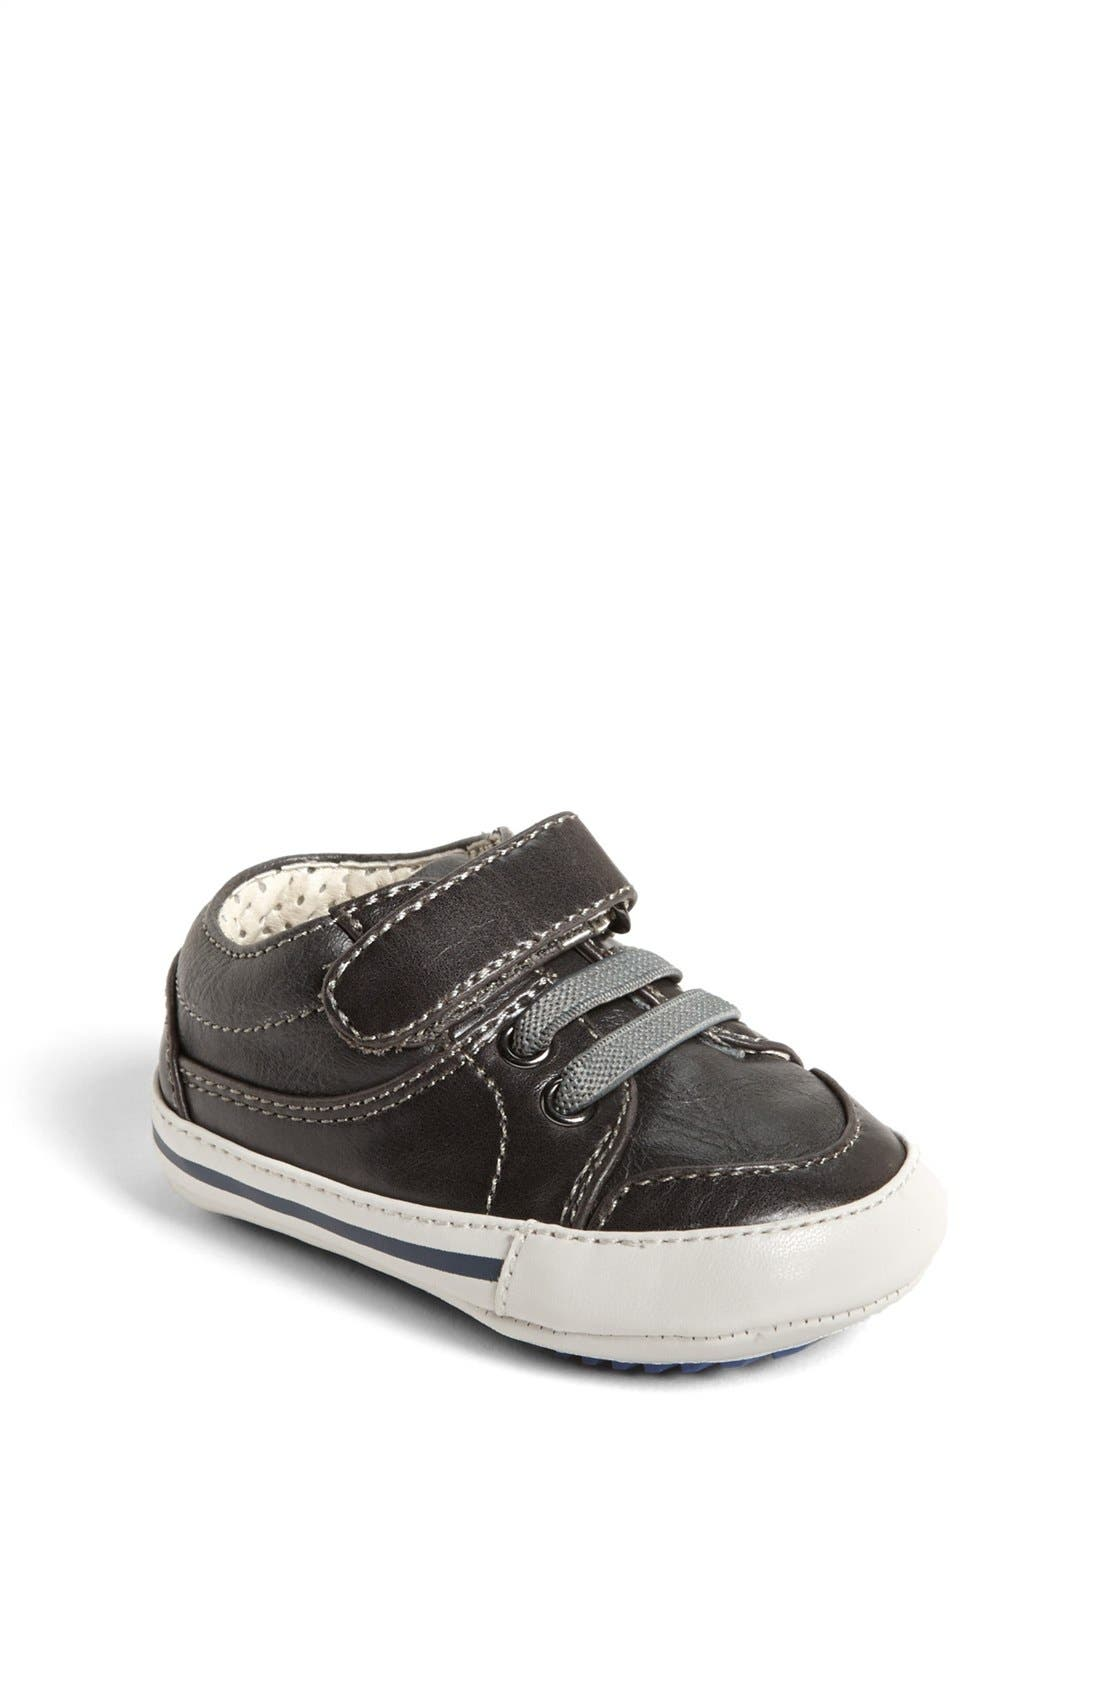 Main Image - Cole Haan 'Mini Cory Funsport' Sneaker (Baby)